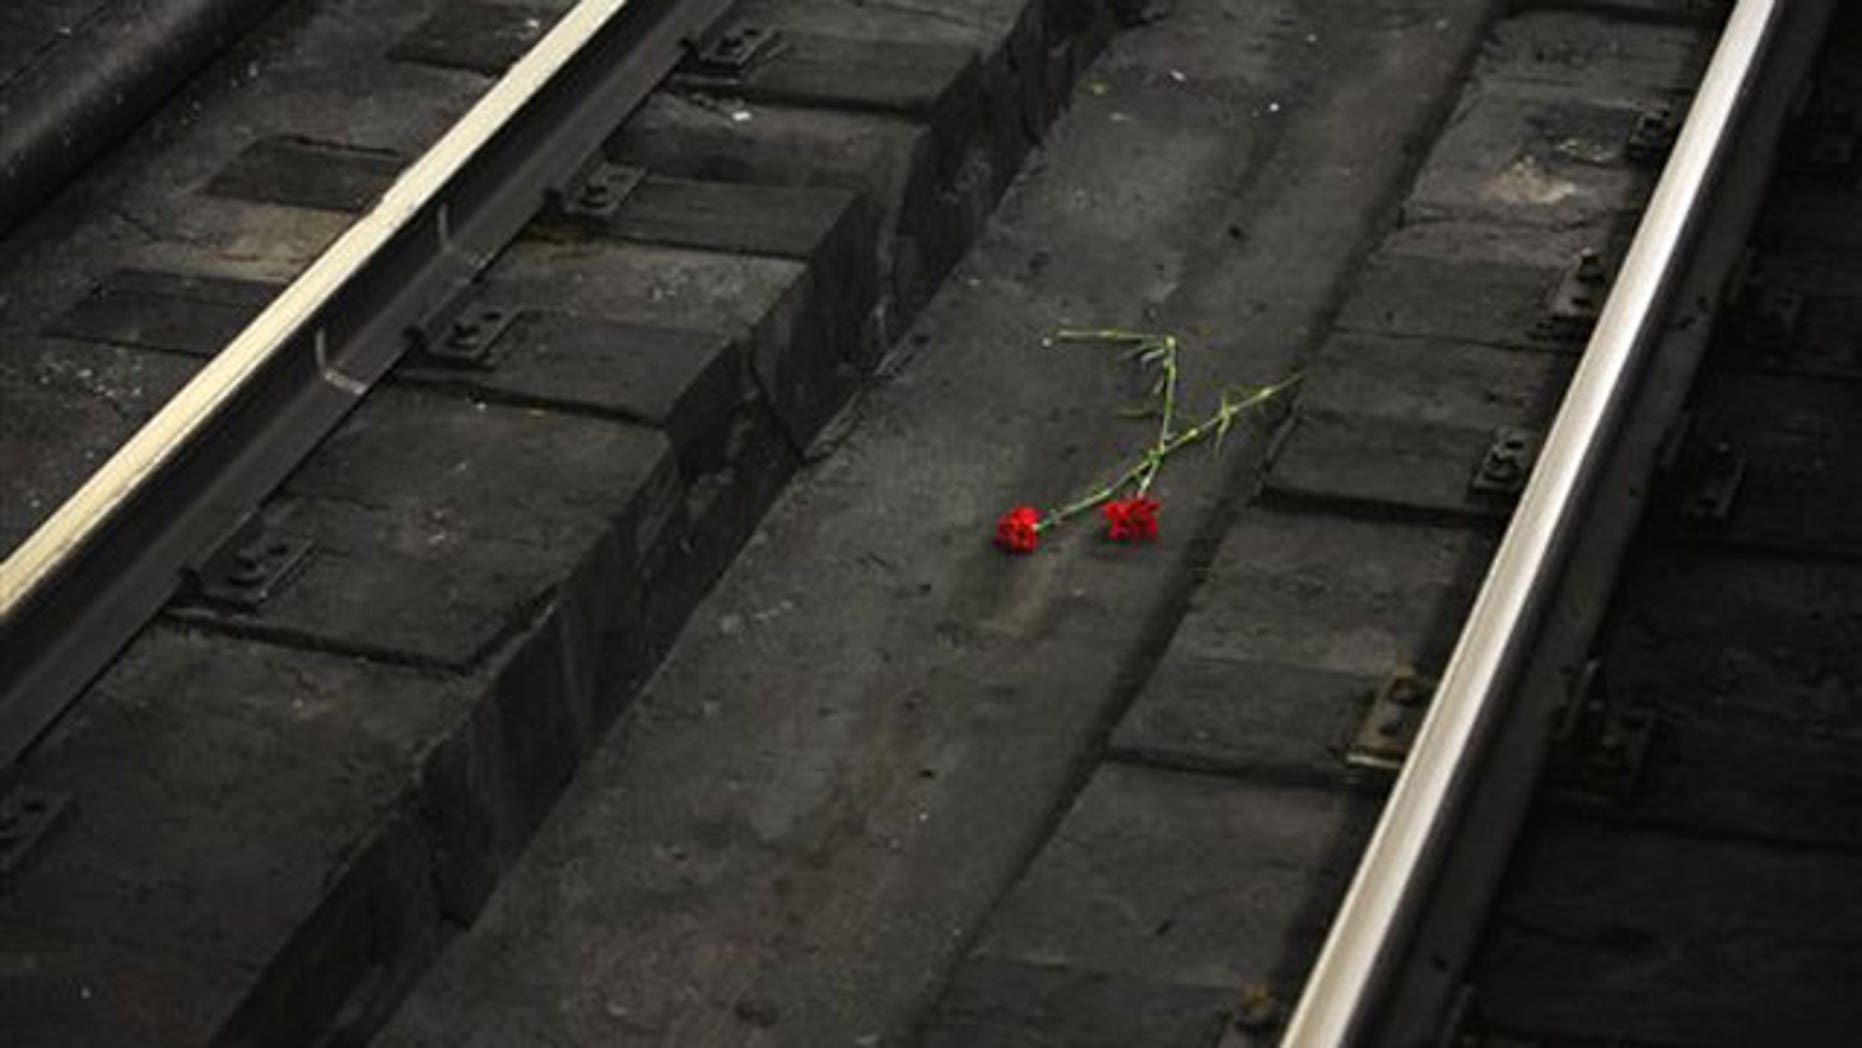 March 31: Two carnations are seen at the site of an explosion at Lubyankka subway station in Moscow.